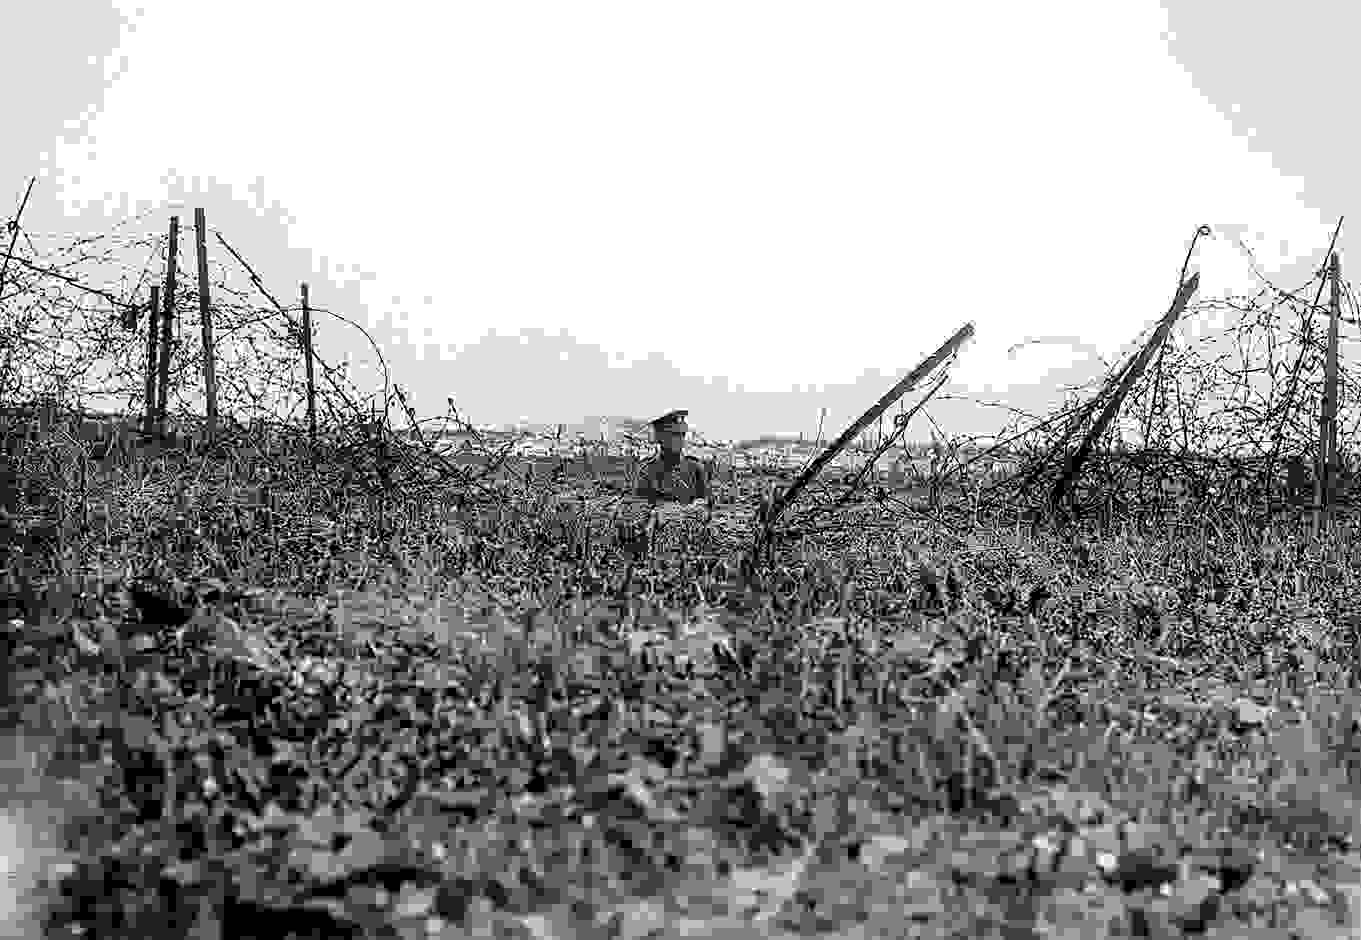 the_preliminary_bombardment_aimed_to_cut_german_barbed_wire_battle_story_somme_1916